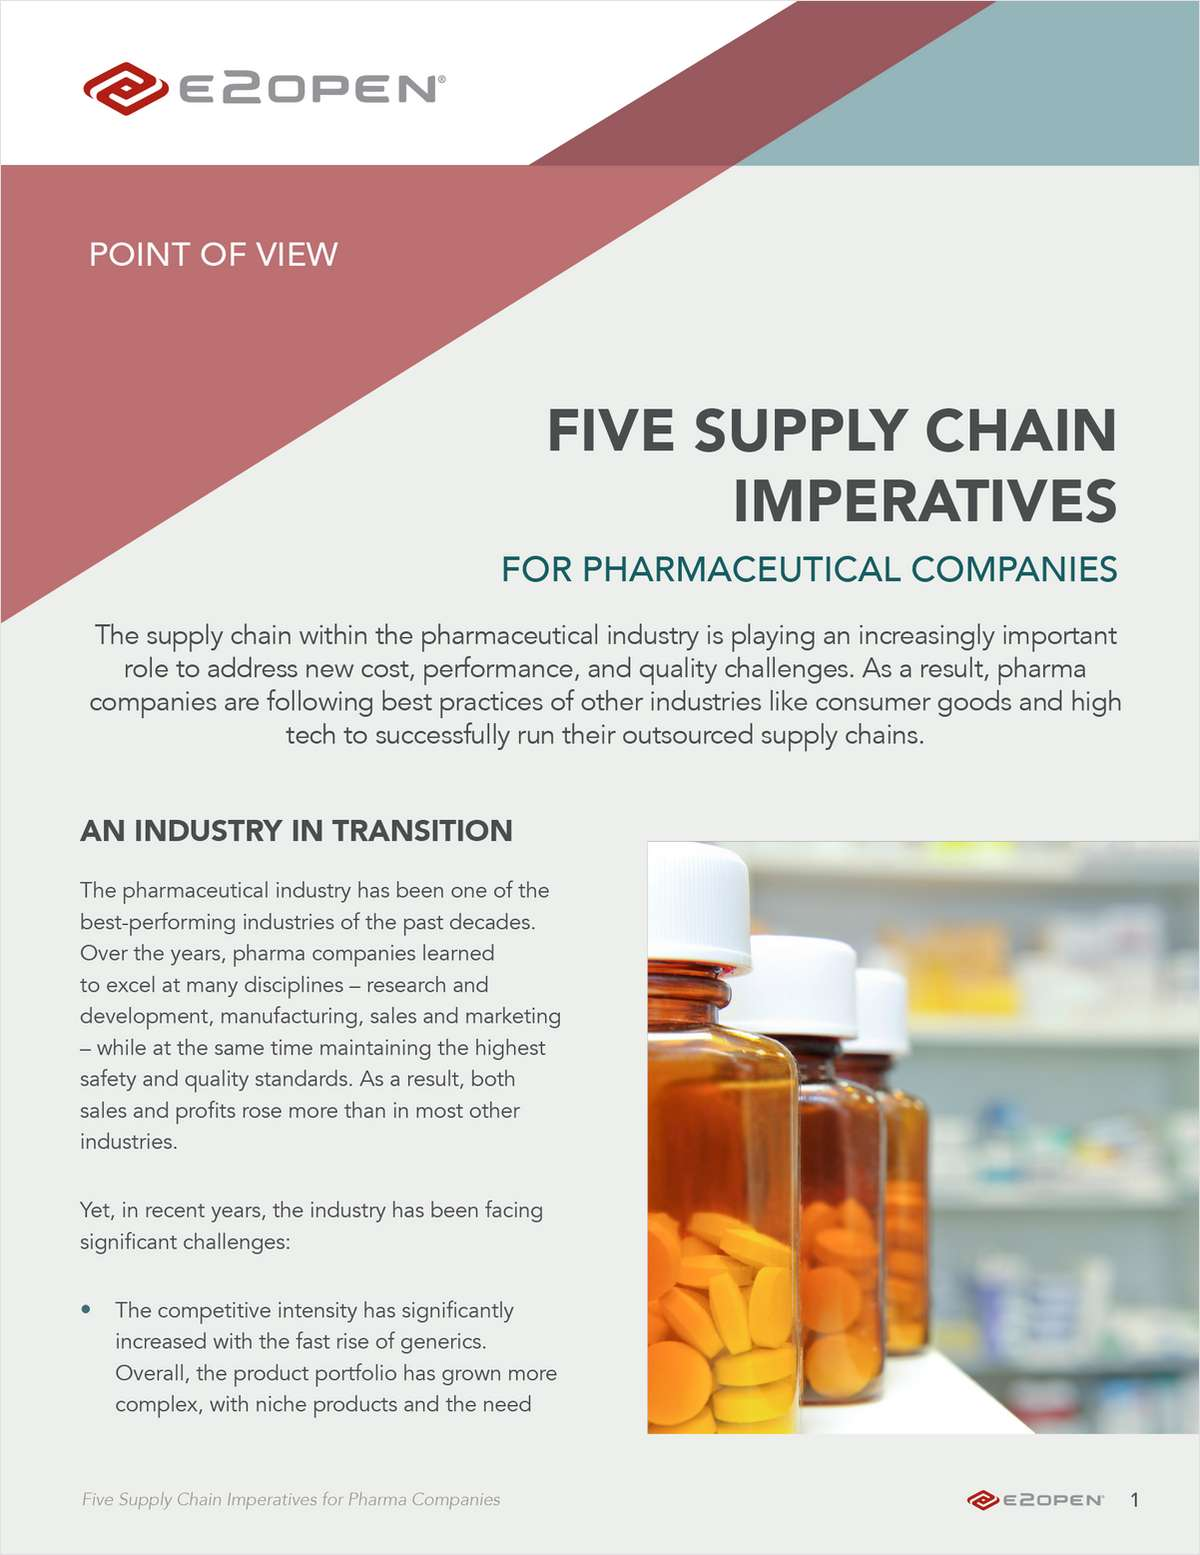 Five Supply Chain Imperatives for Pharmaceutical Companies